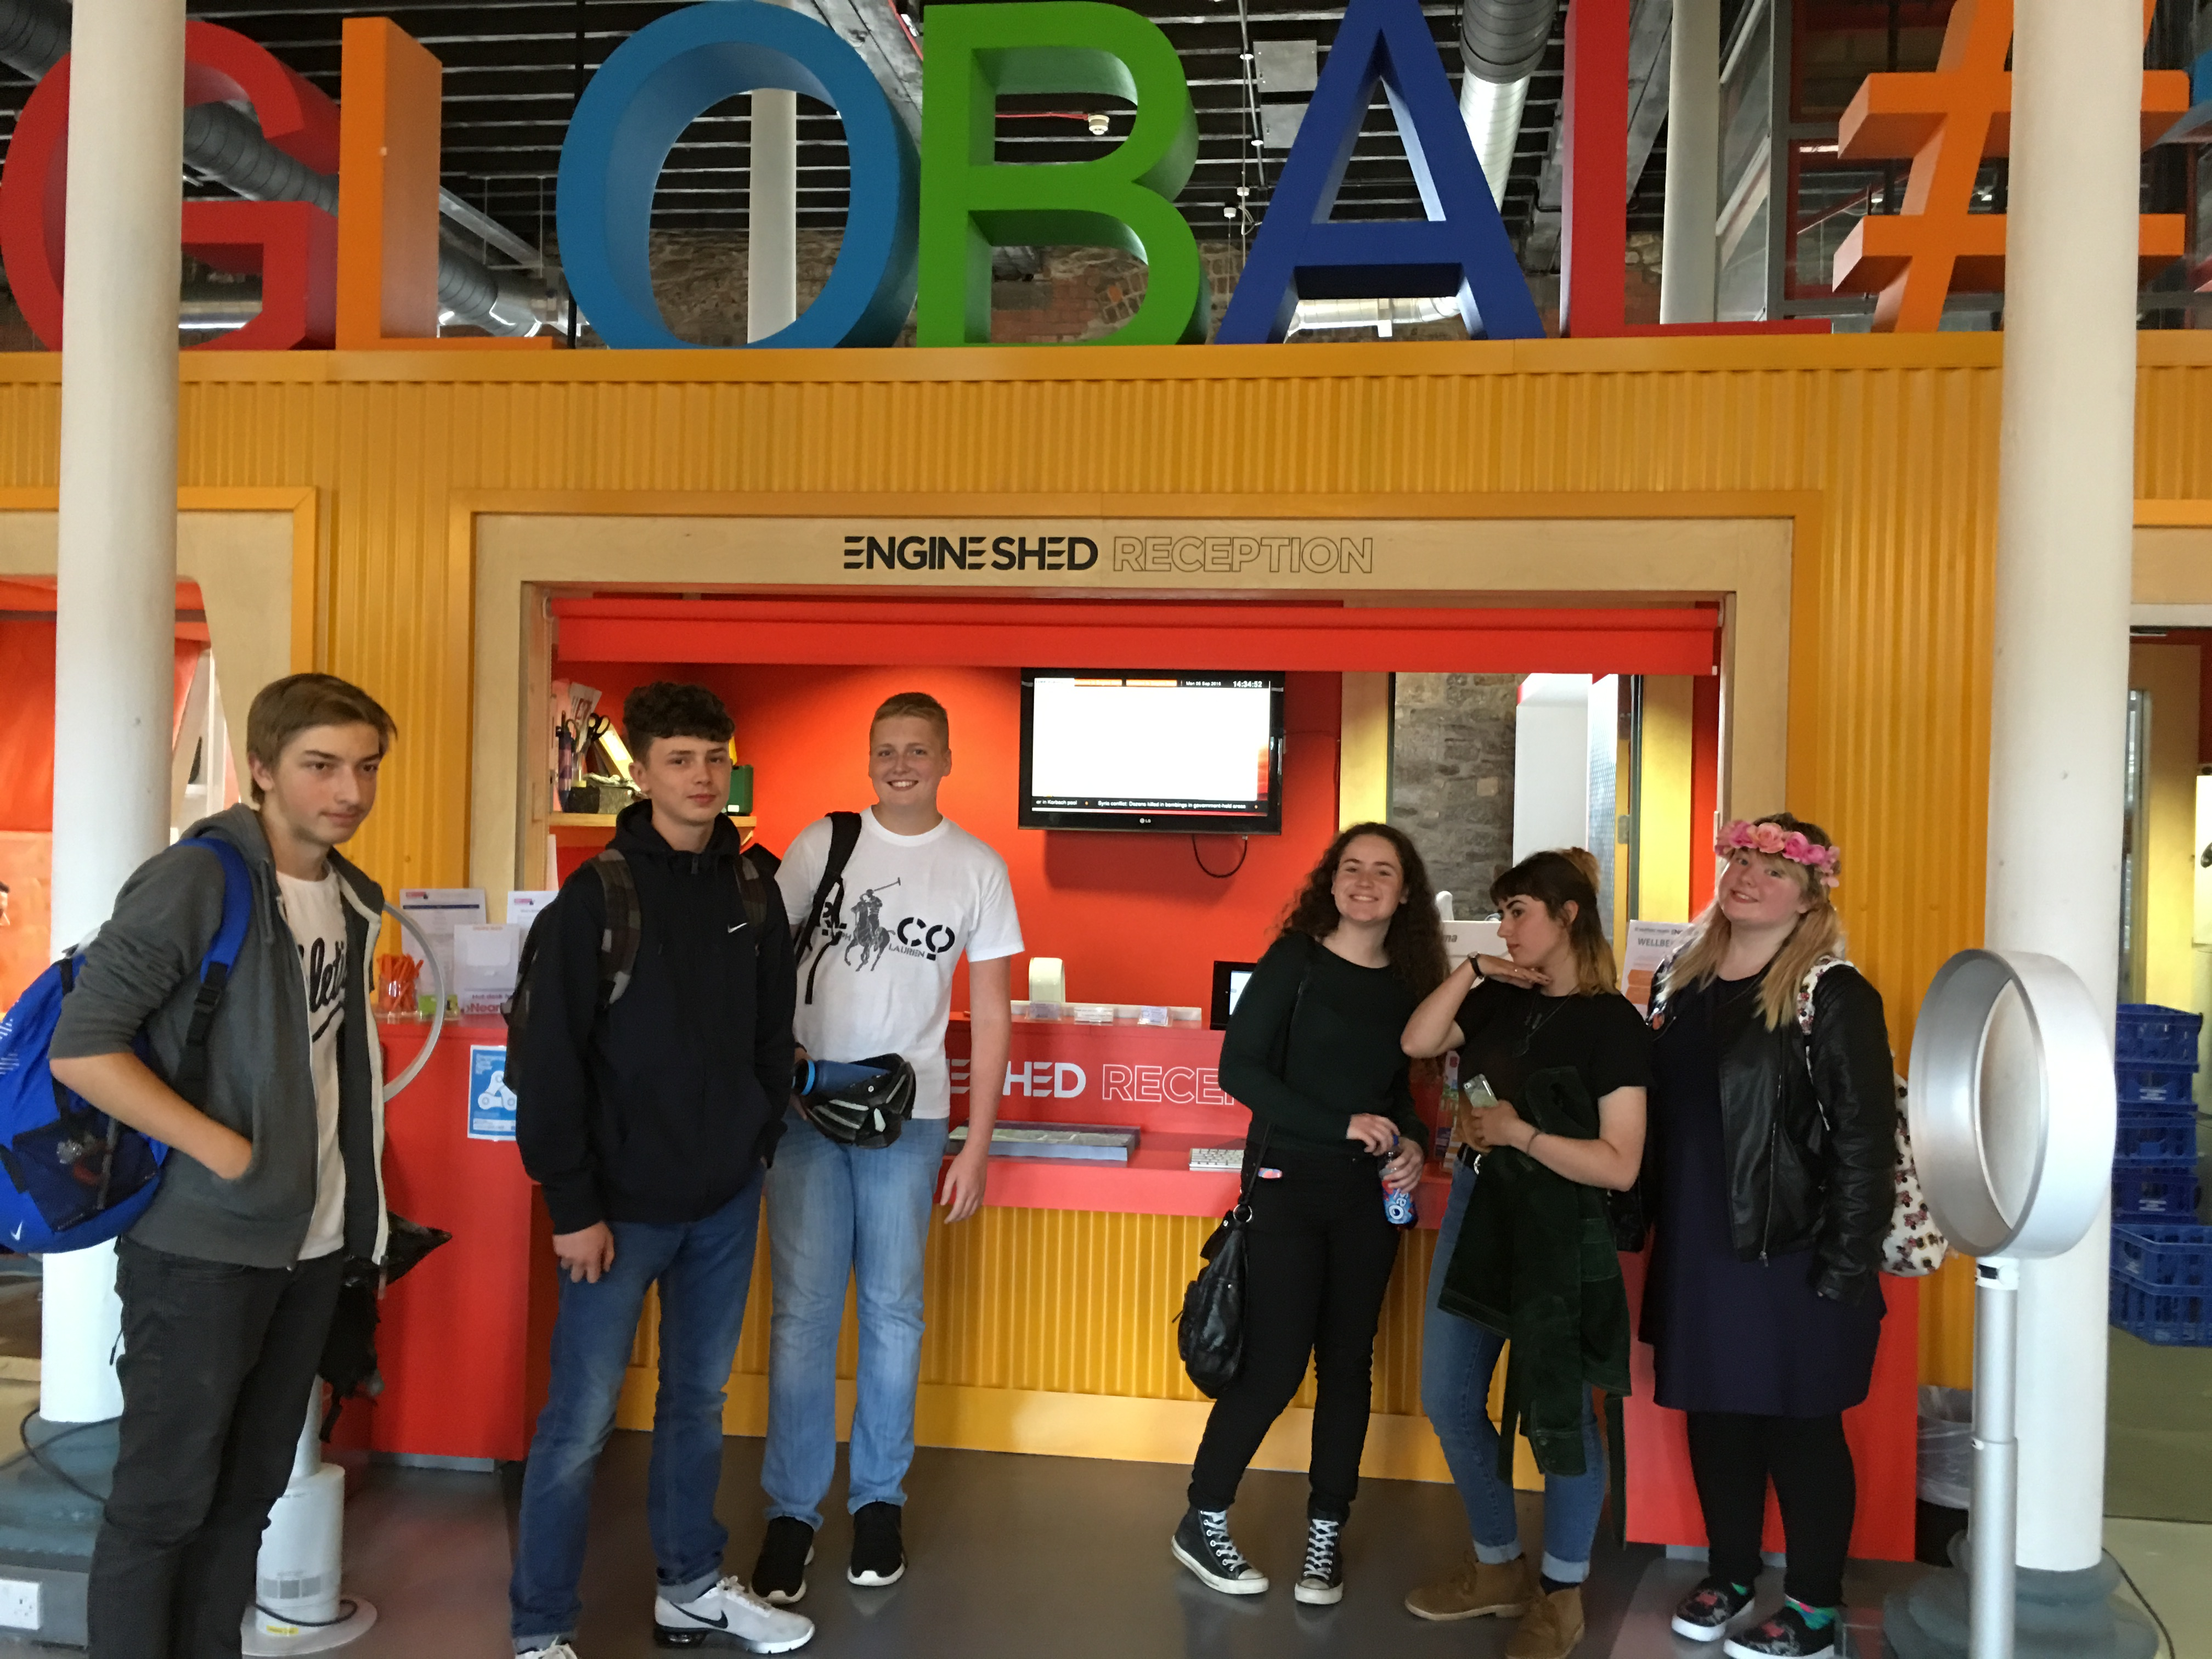 Students at Engine Shed reception